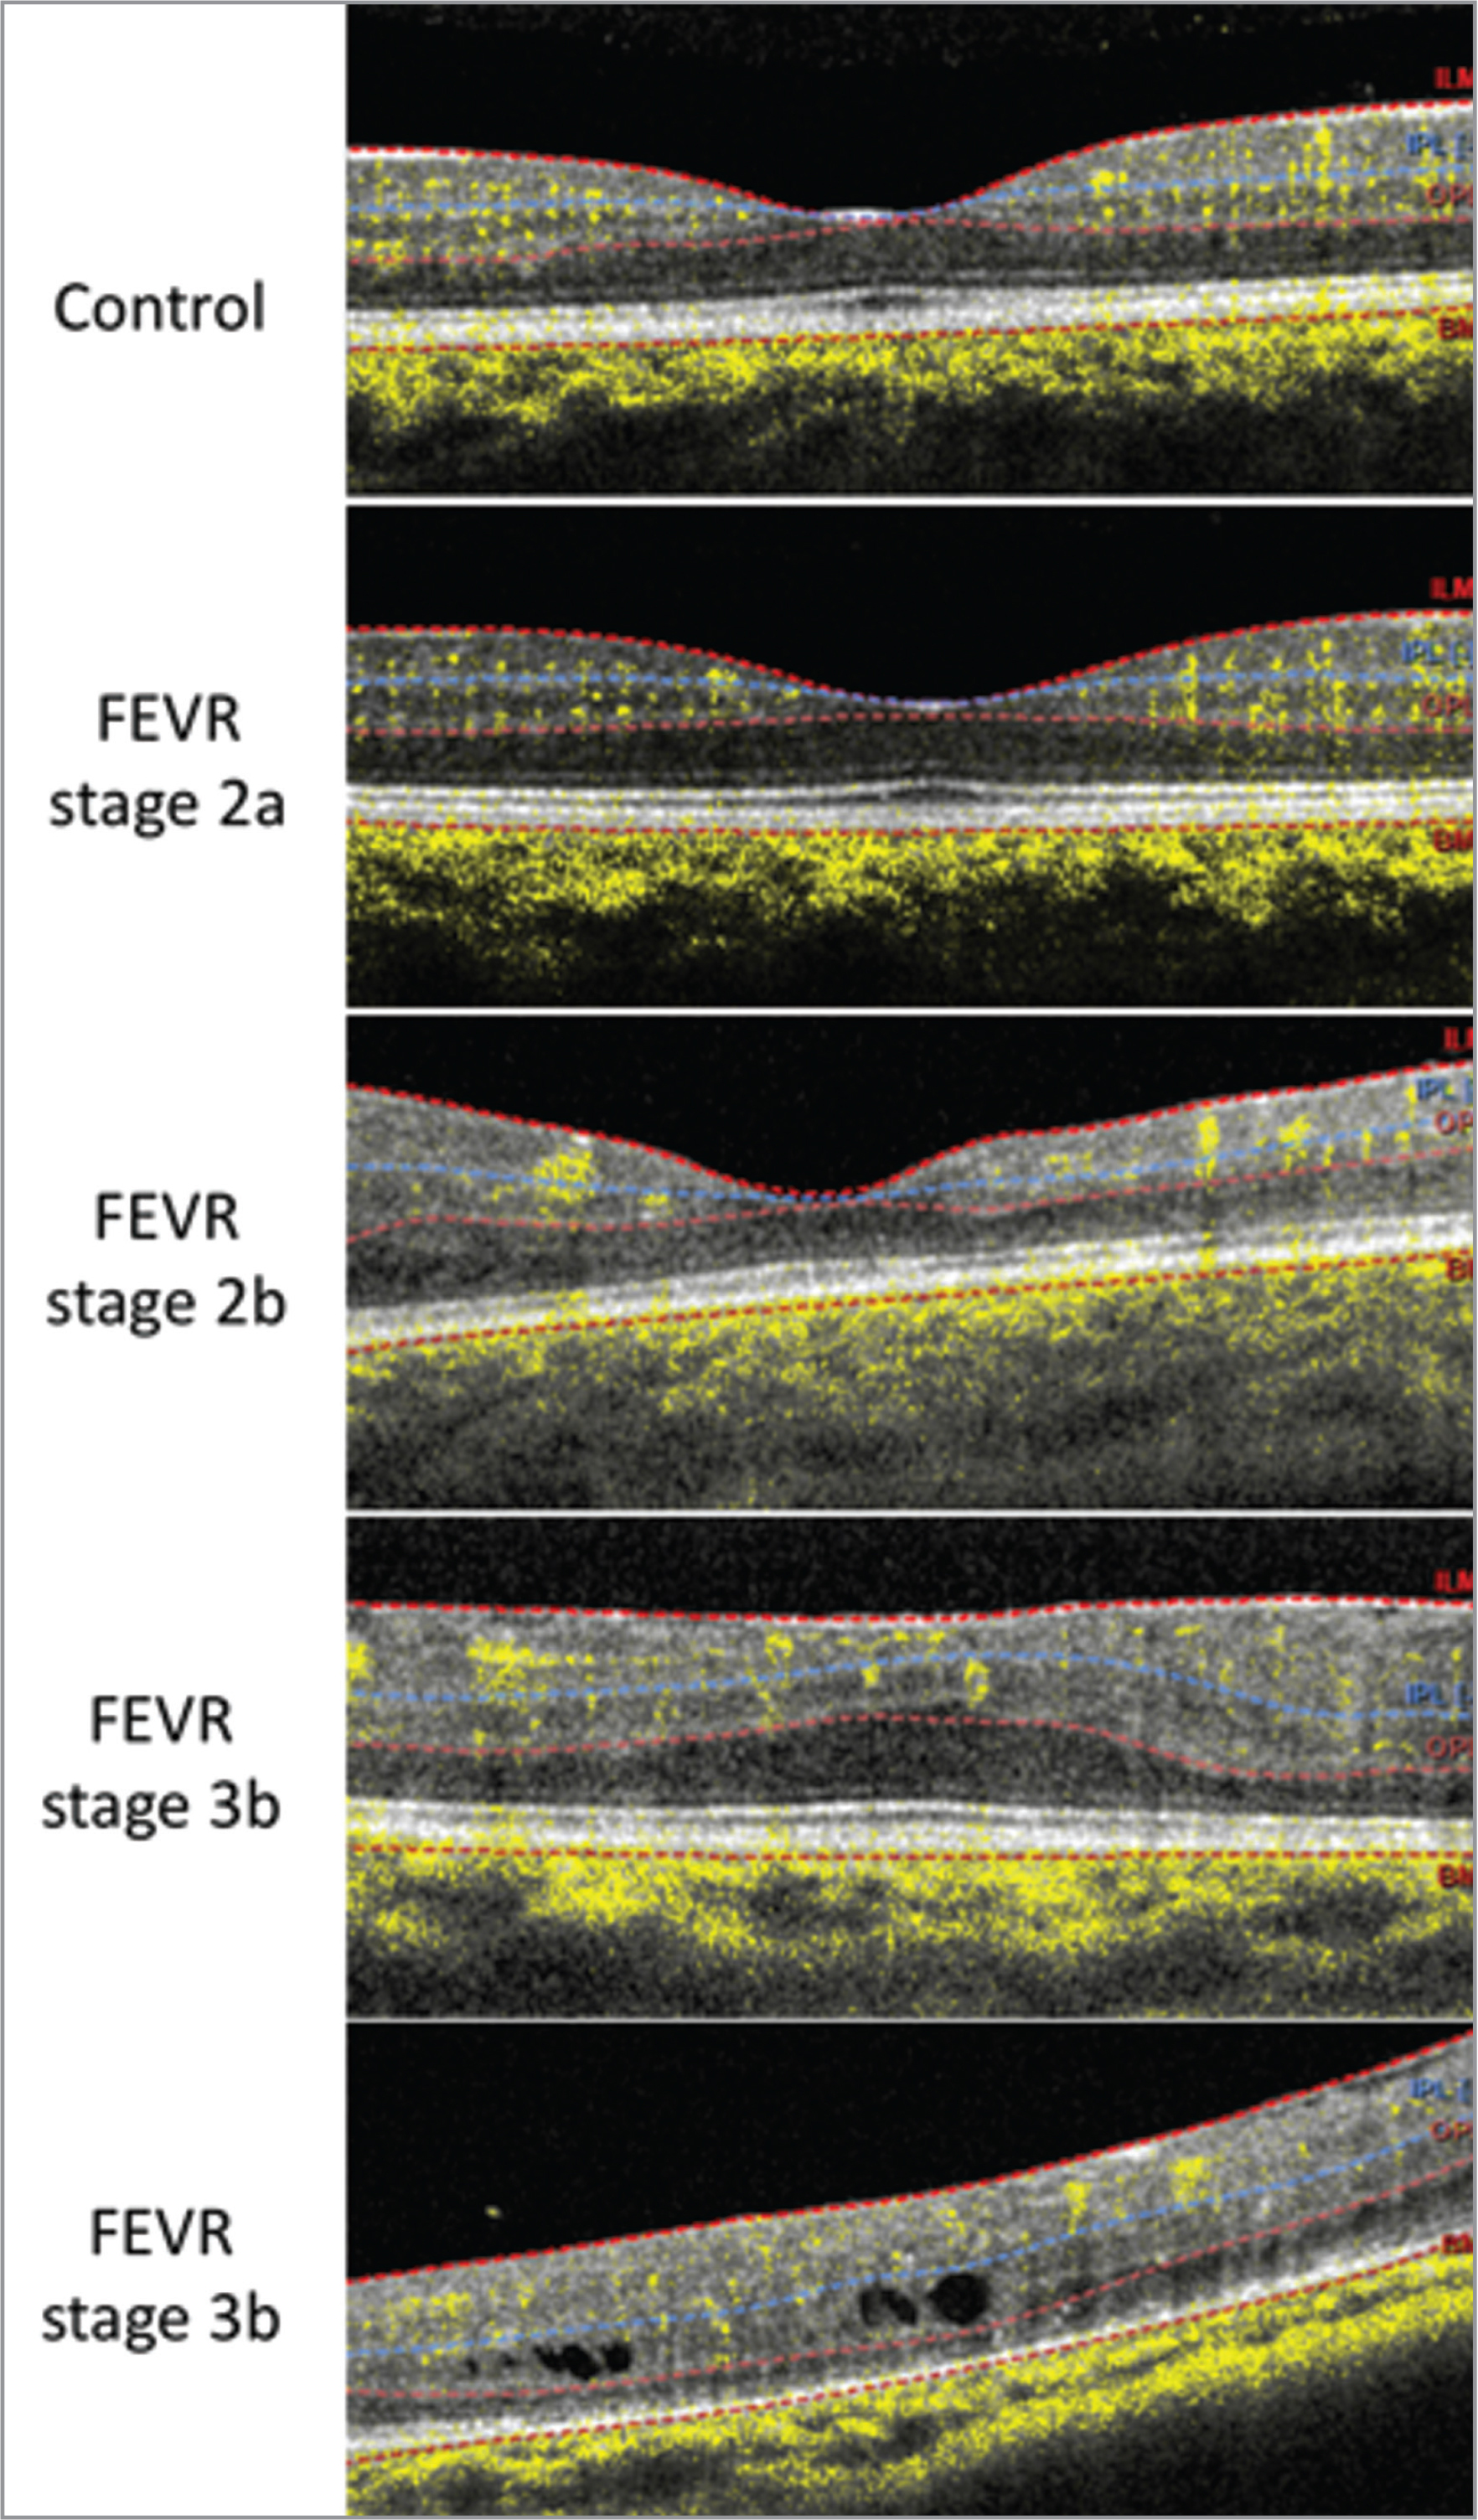 Cross-sectional optical coherence tomography (OCT)/OCT angiography (OCTA) scans corresponding to each of the eyes shown in Figure 1: control, familial exudative vitreoretinopathy (FEVR) stage 2a, FEVR stage 2b, FEVR stage 3b, and FEVR stage 3b. The dotted lines show the segmentation boundaries used to generate the en face OCTA images of the superficial vascular complex (internal limiting membrane to inner plexiform layer [IPL]) and deep vascular complex (IPL to outer plexiform layer).